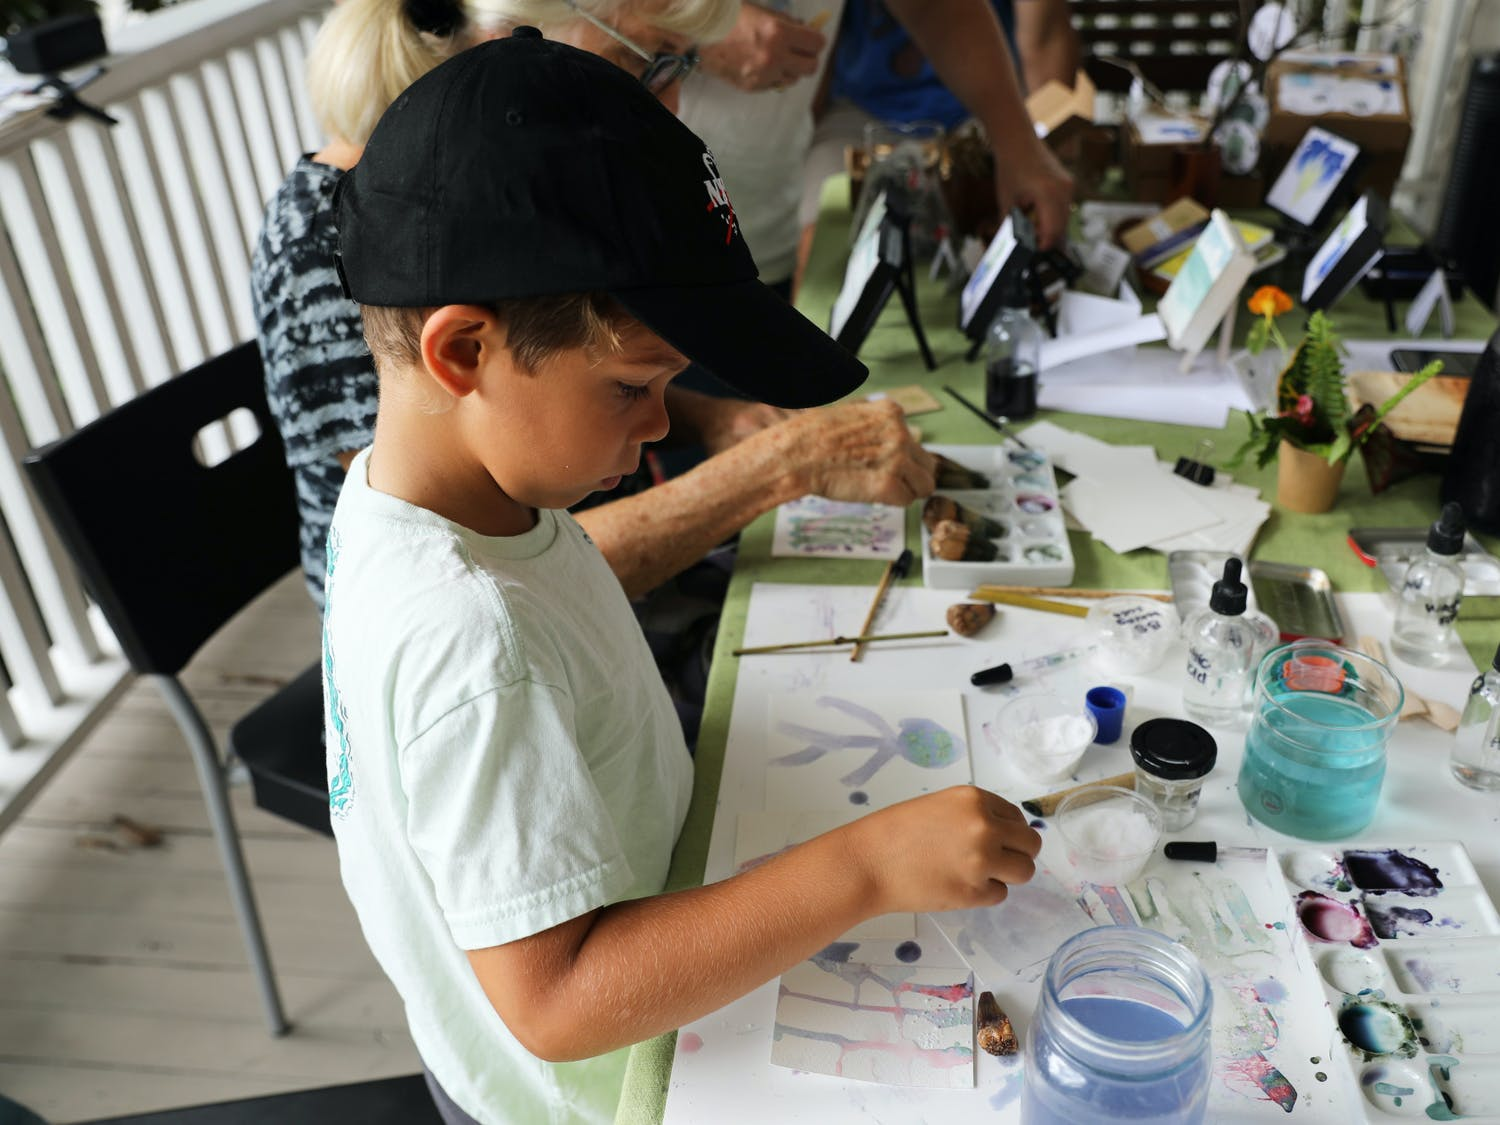 Dylan Perez, 6, uses blue butterfly flower pigment to paint on reusable paper at an eco-art event on Saturday, June 12, 2021.